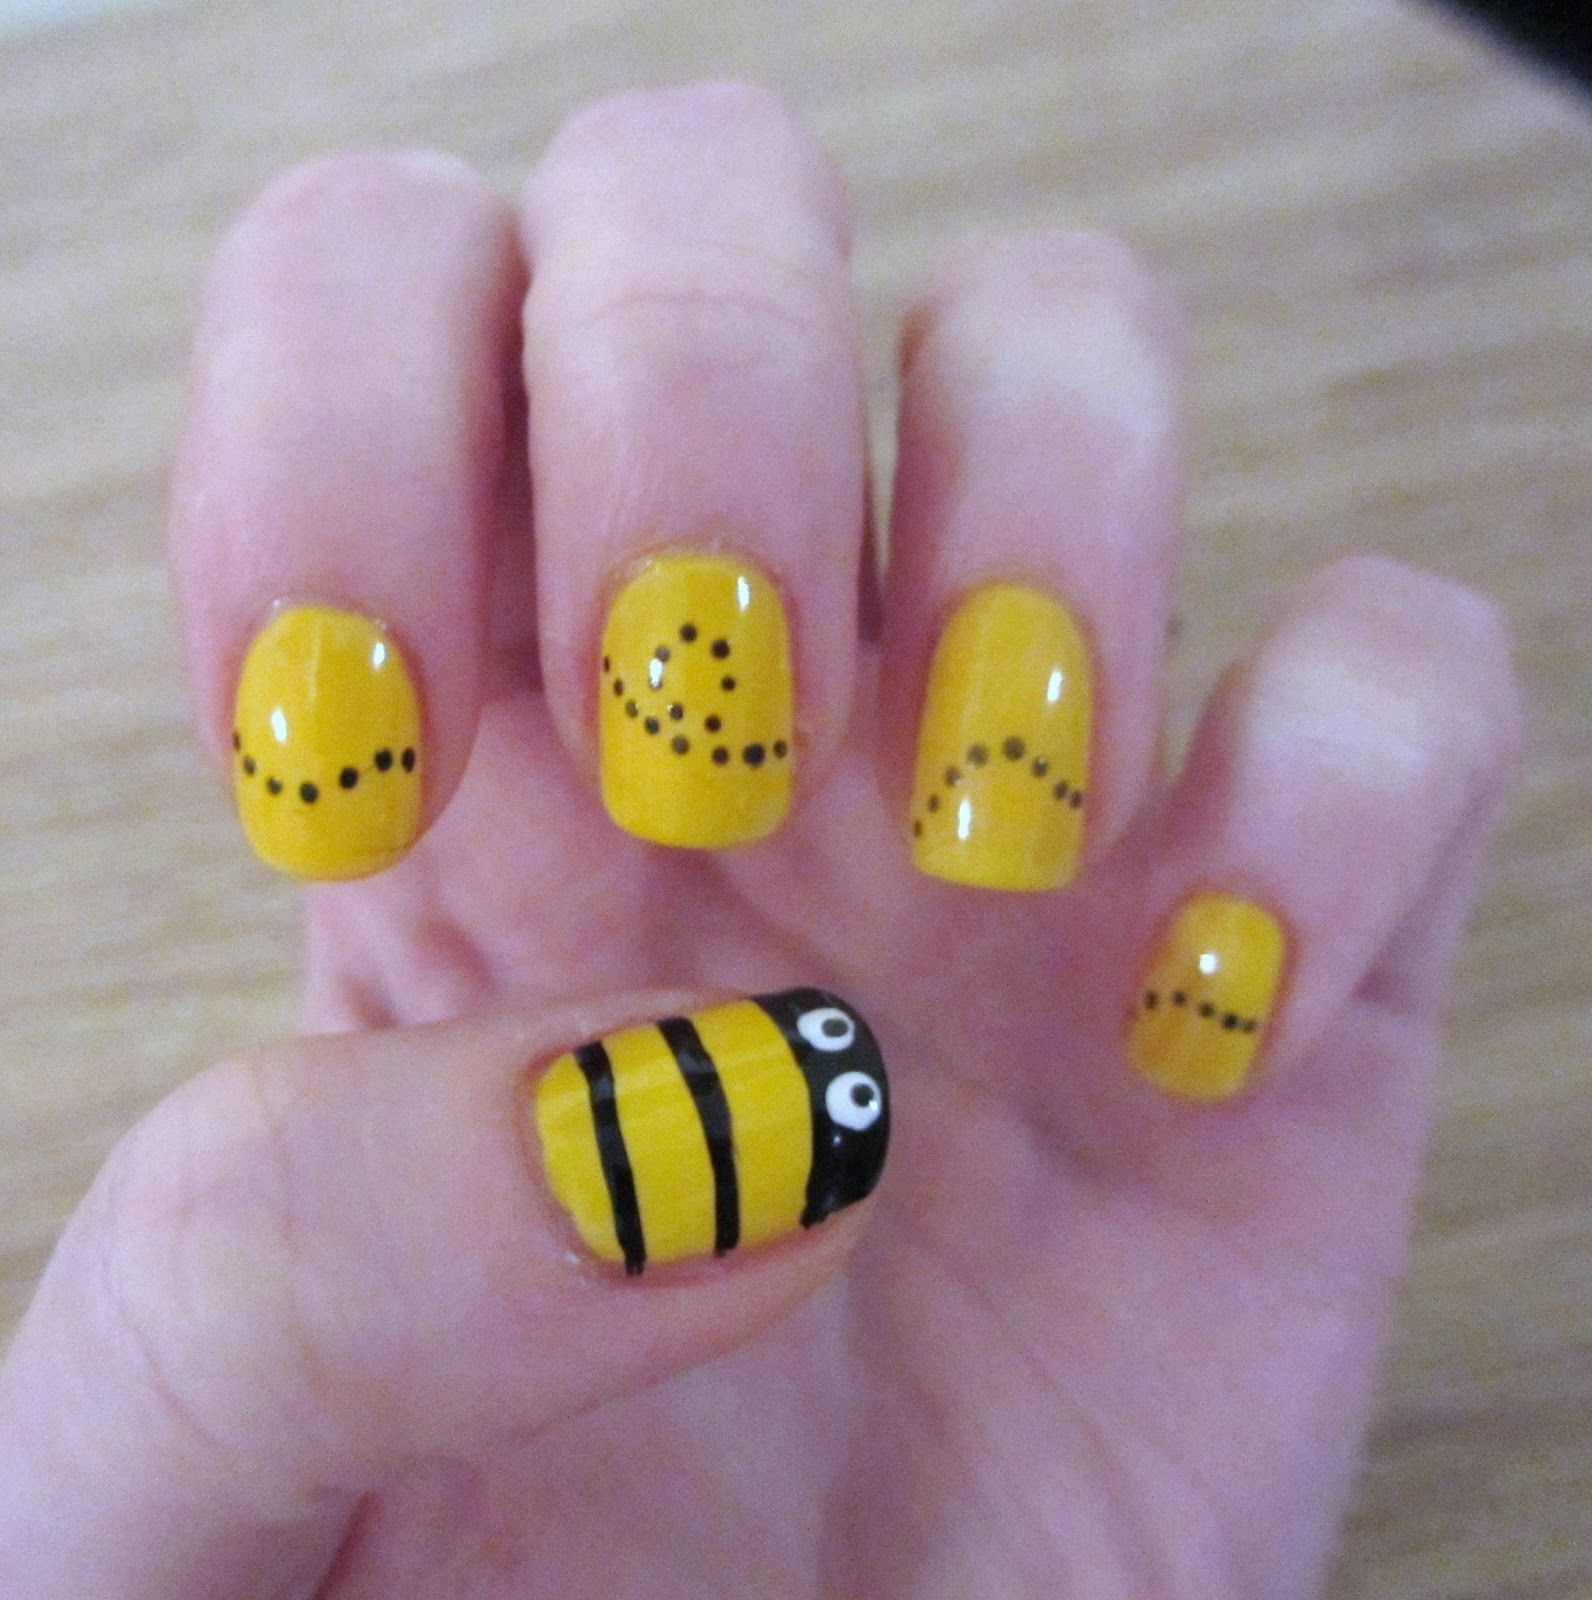 Bumblebeenailart Confessions And Creations Nail